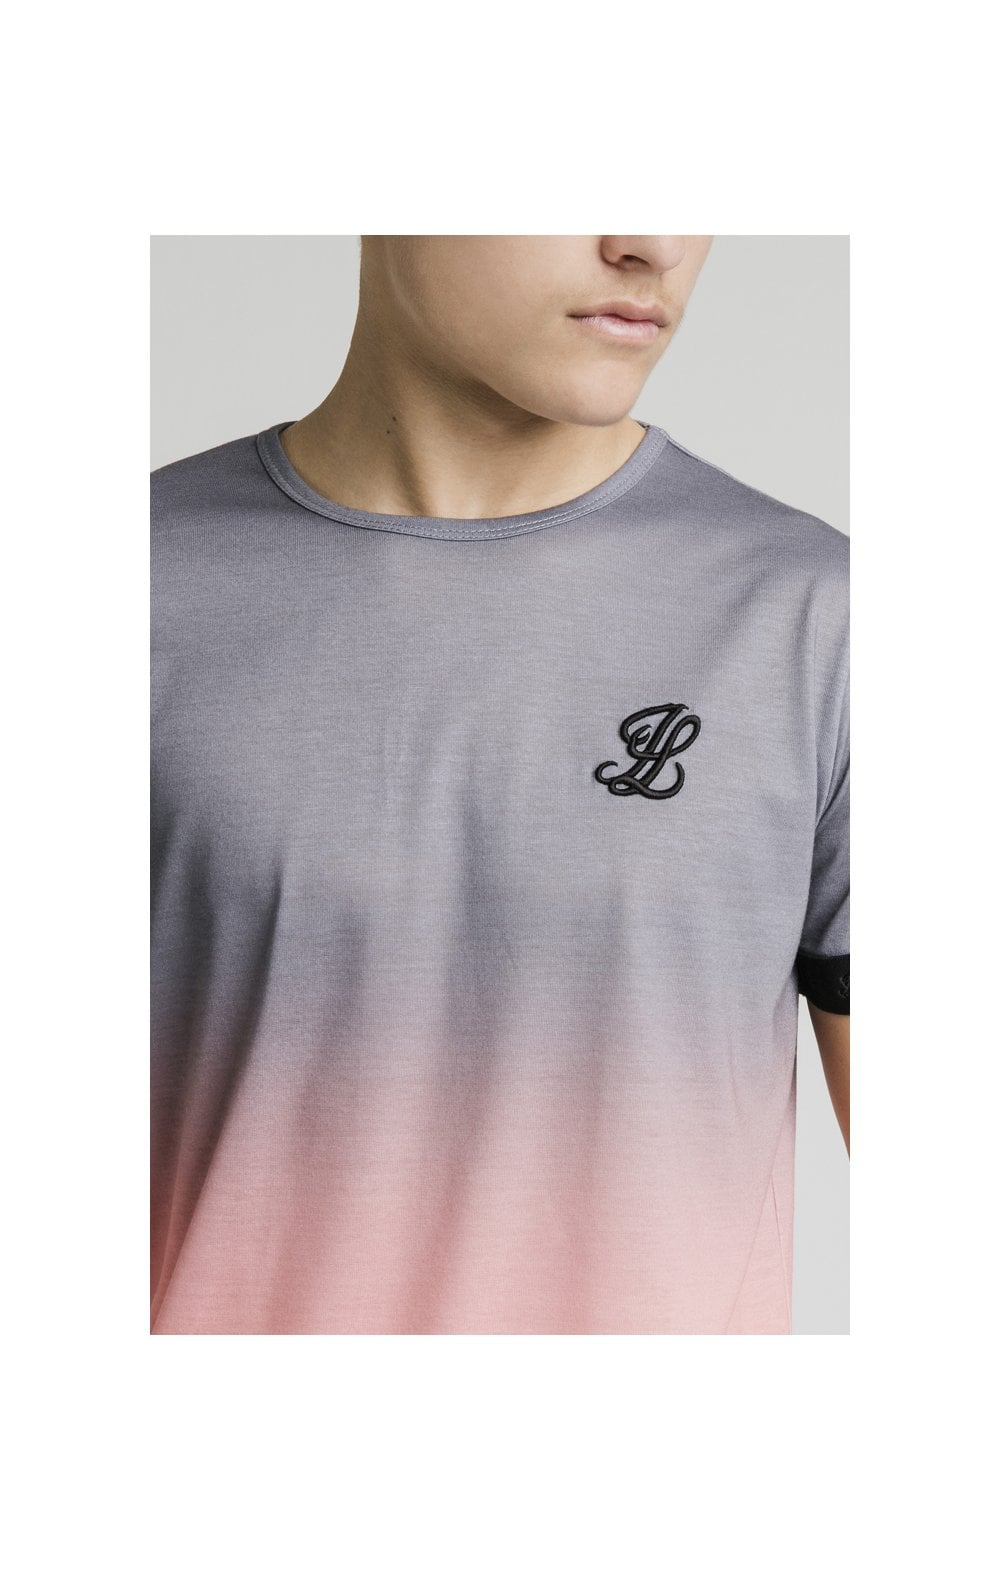 Load image into Gallery viewer, Illusive London Fade Tech Tee - Grey & Peach (1)